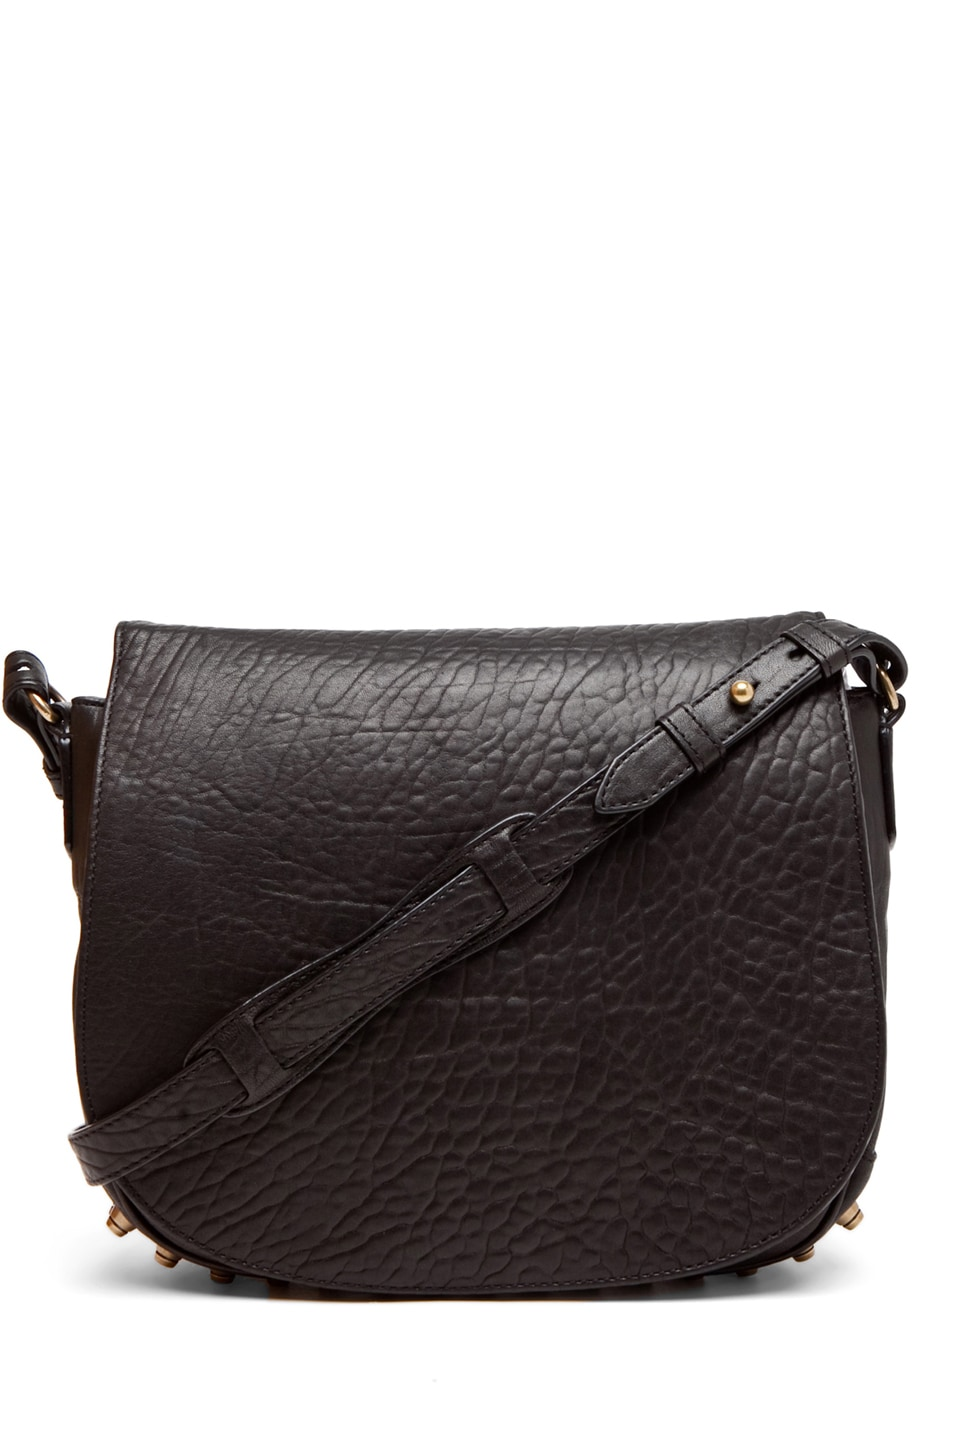 Image 1 of Alexander Wang Lia Sling in Black